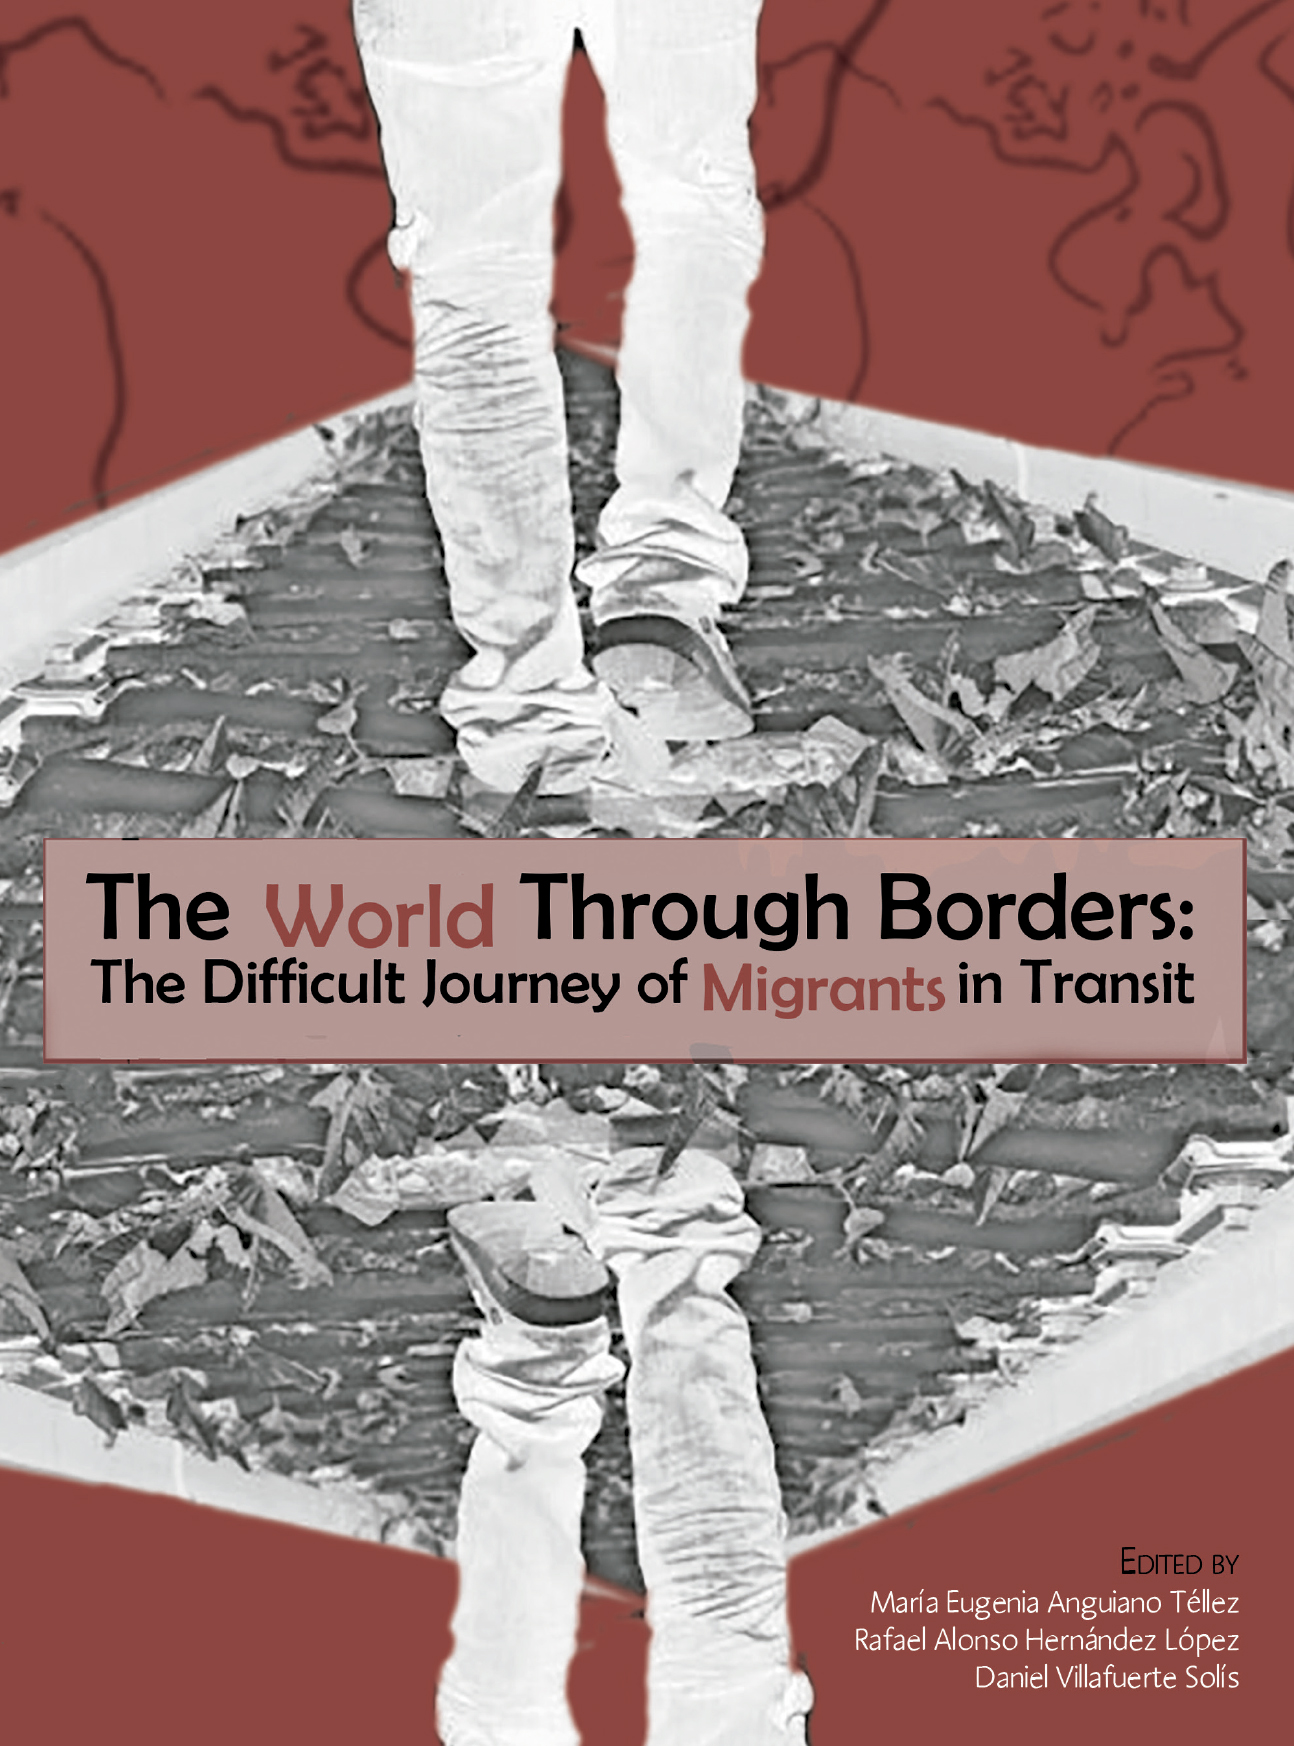 Portada de The World Through Borders: The Difficult Journey of Migrants in Transit.